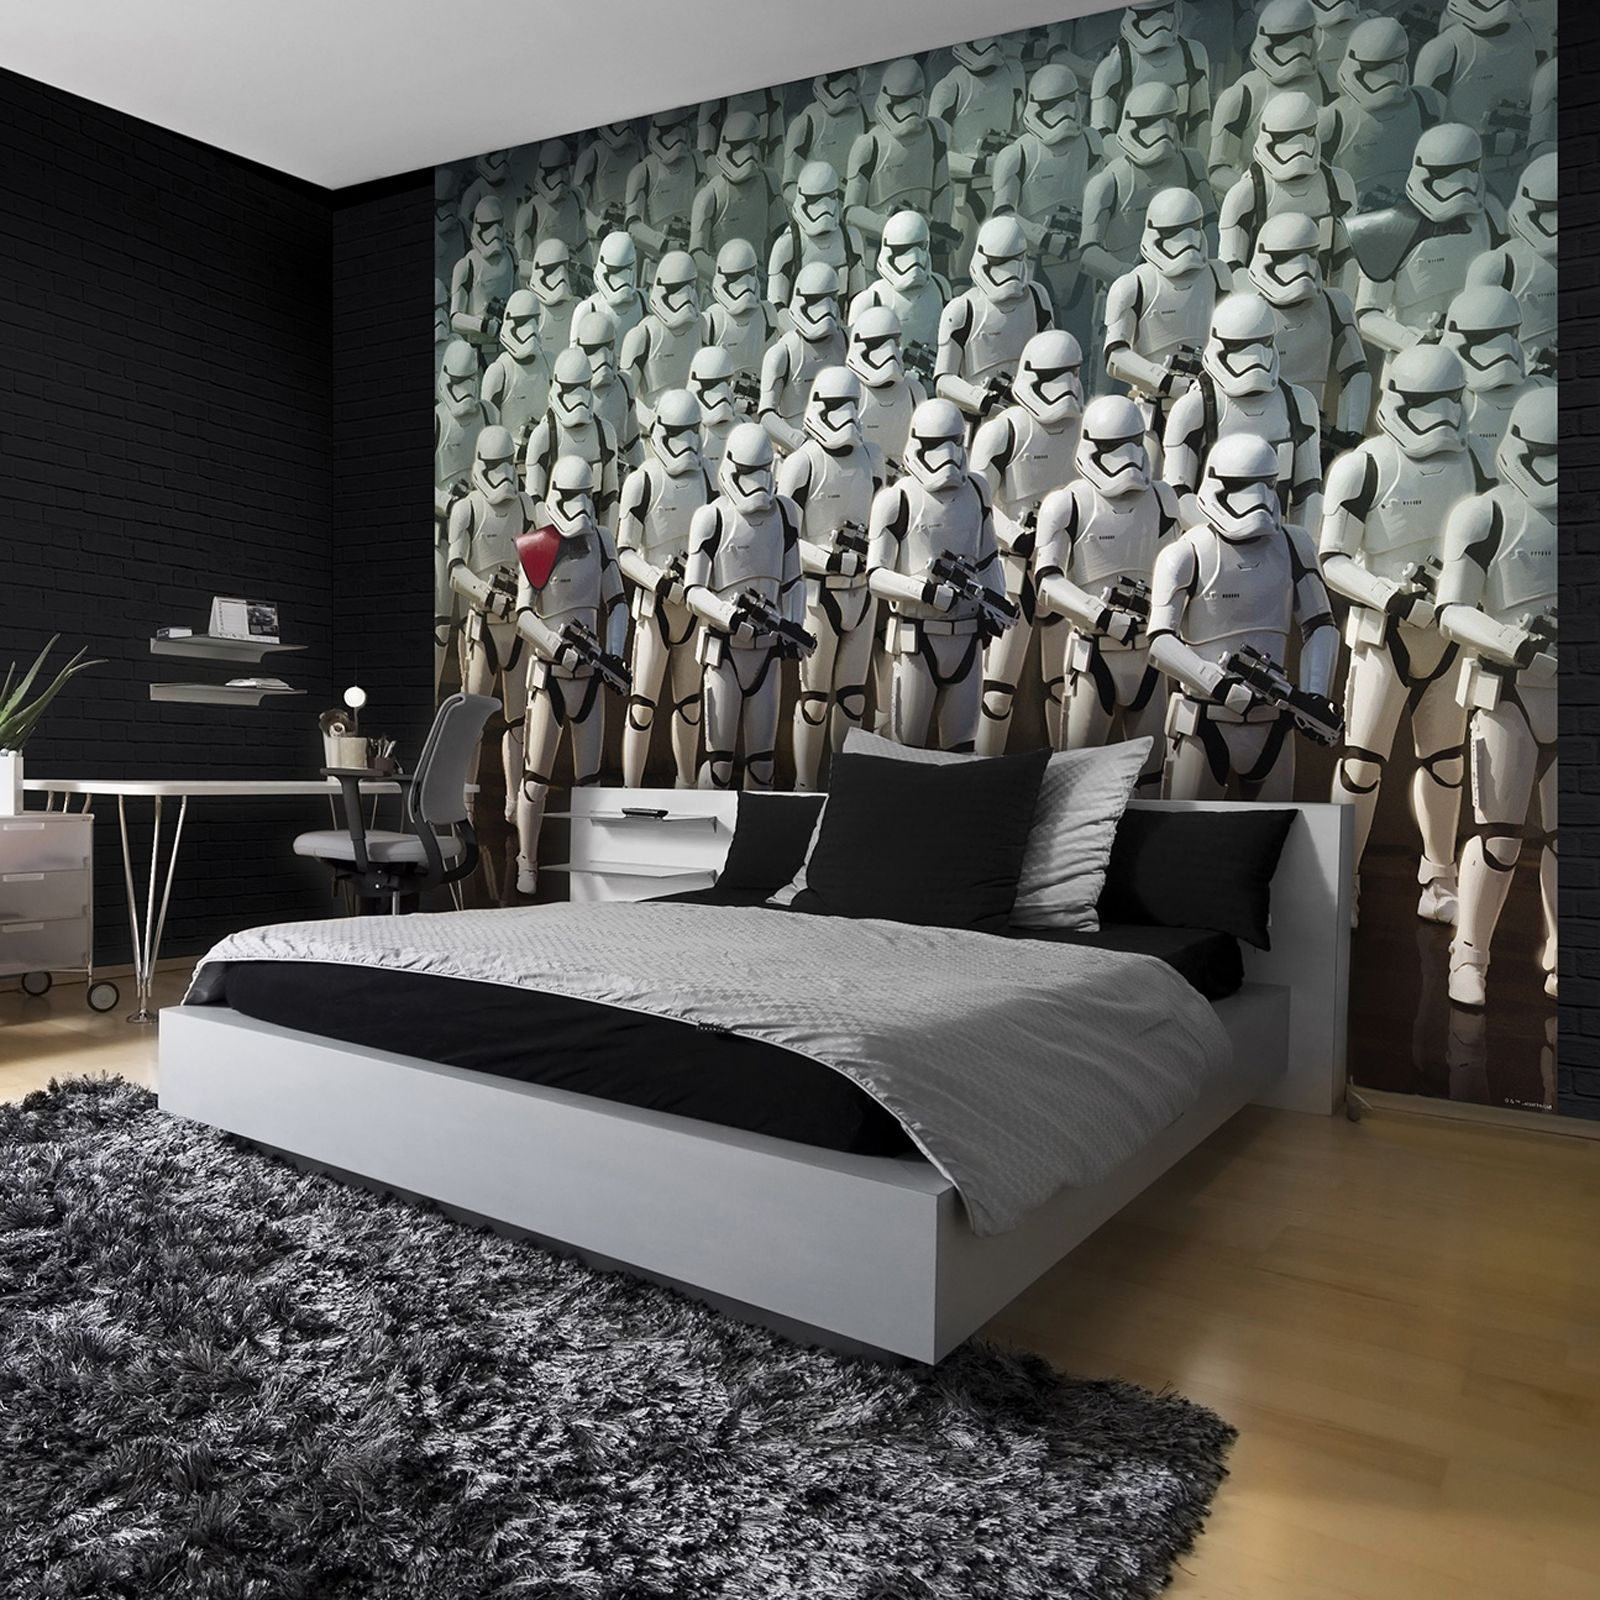 Star Wars Wall Art Bedroom : Andrews Living Arts – Fantastic Room For Star Wars Wall Art (View 16 of 20)